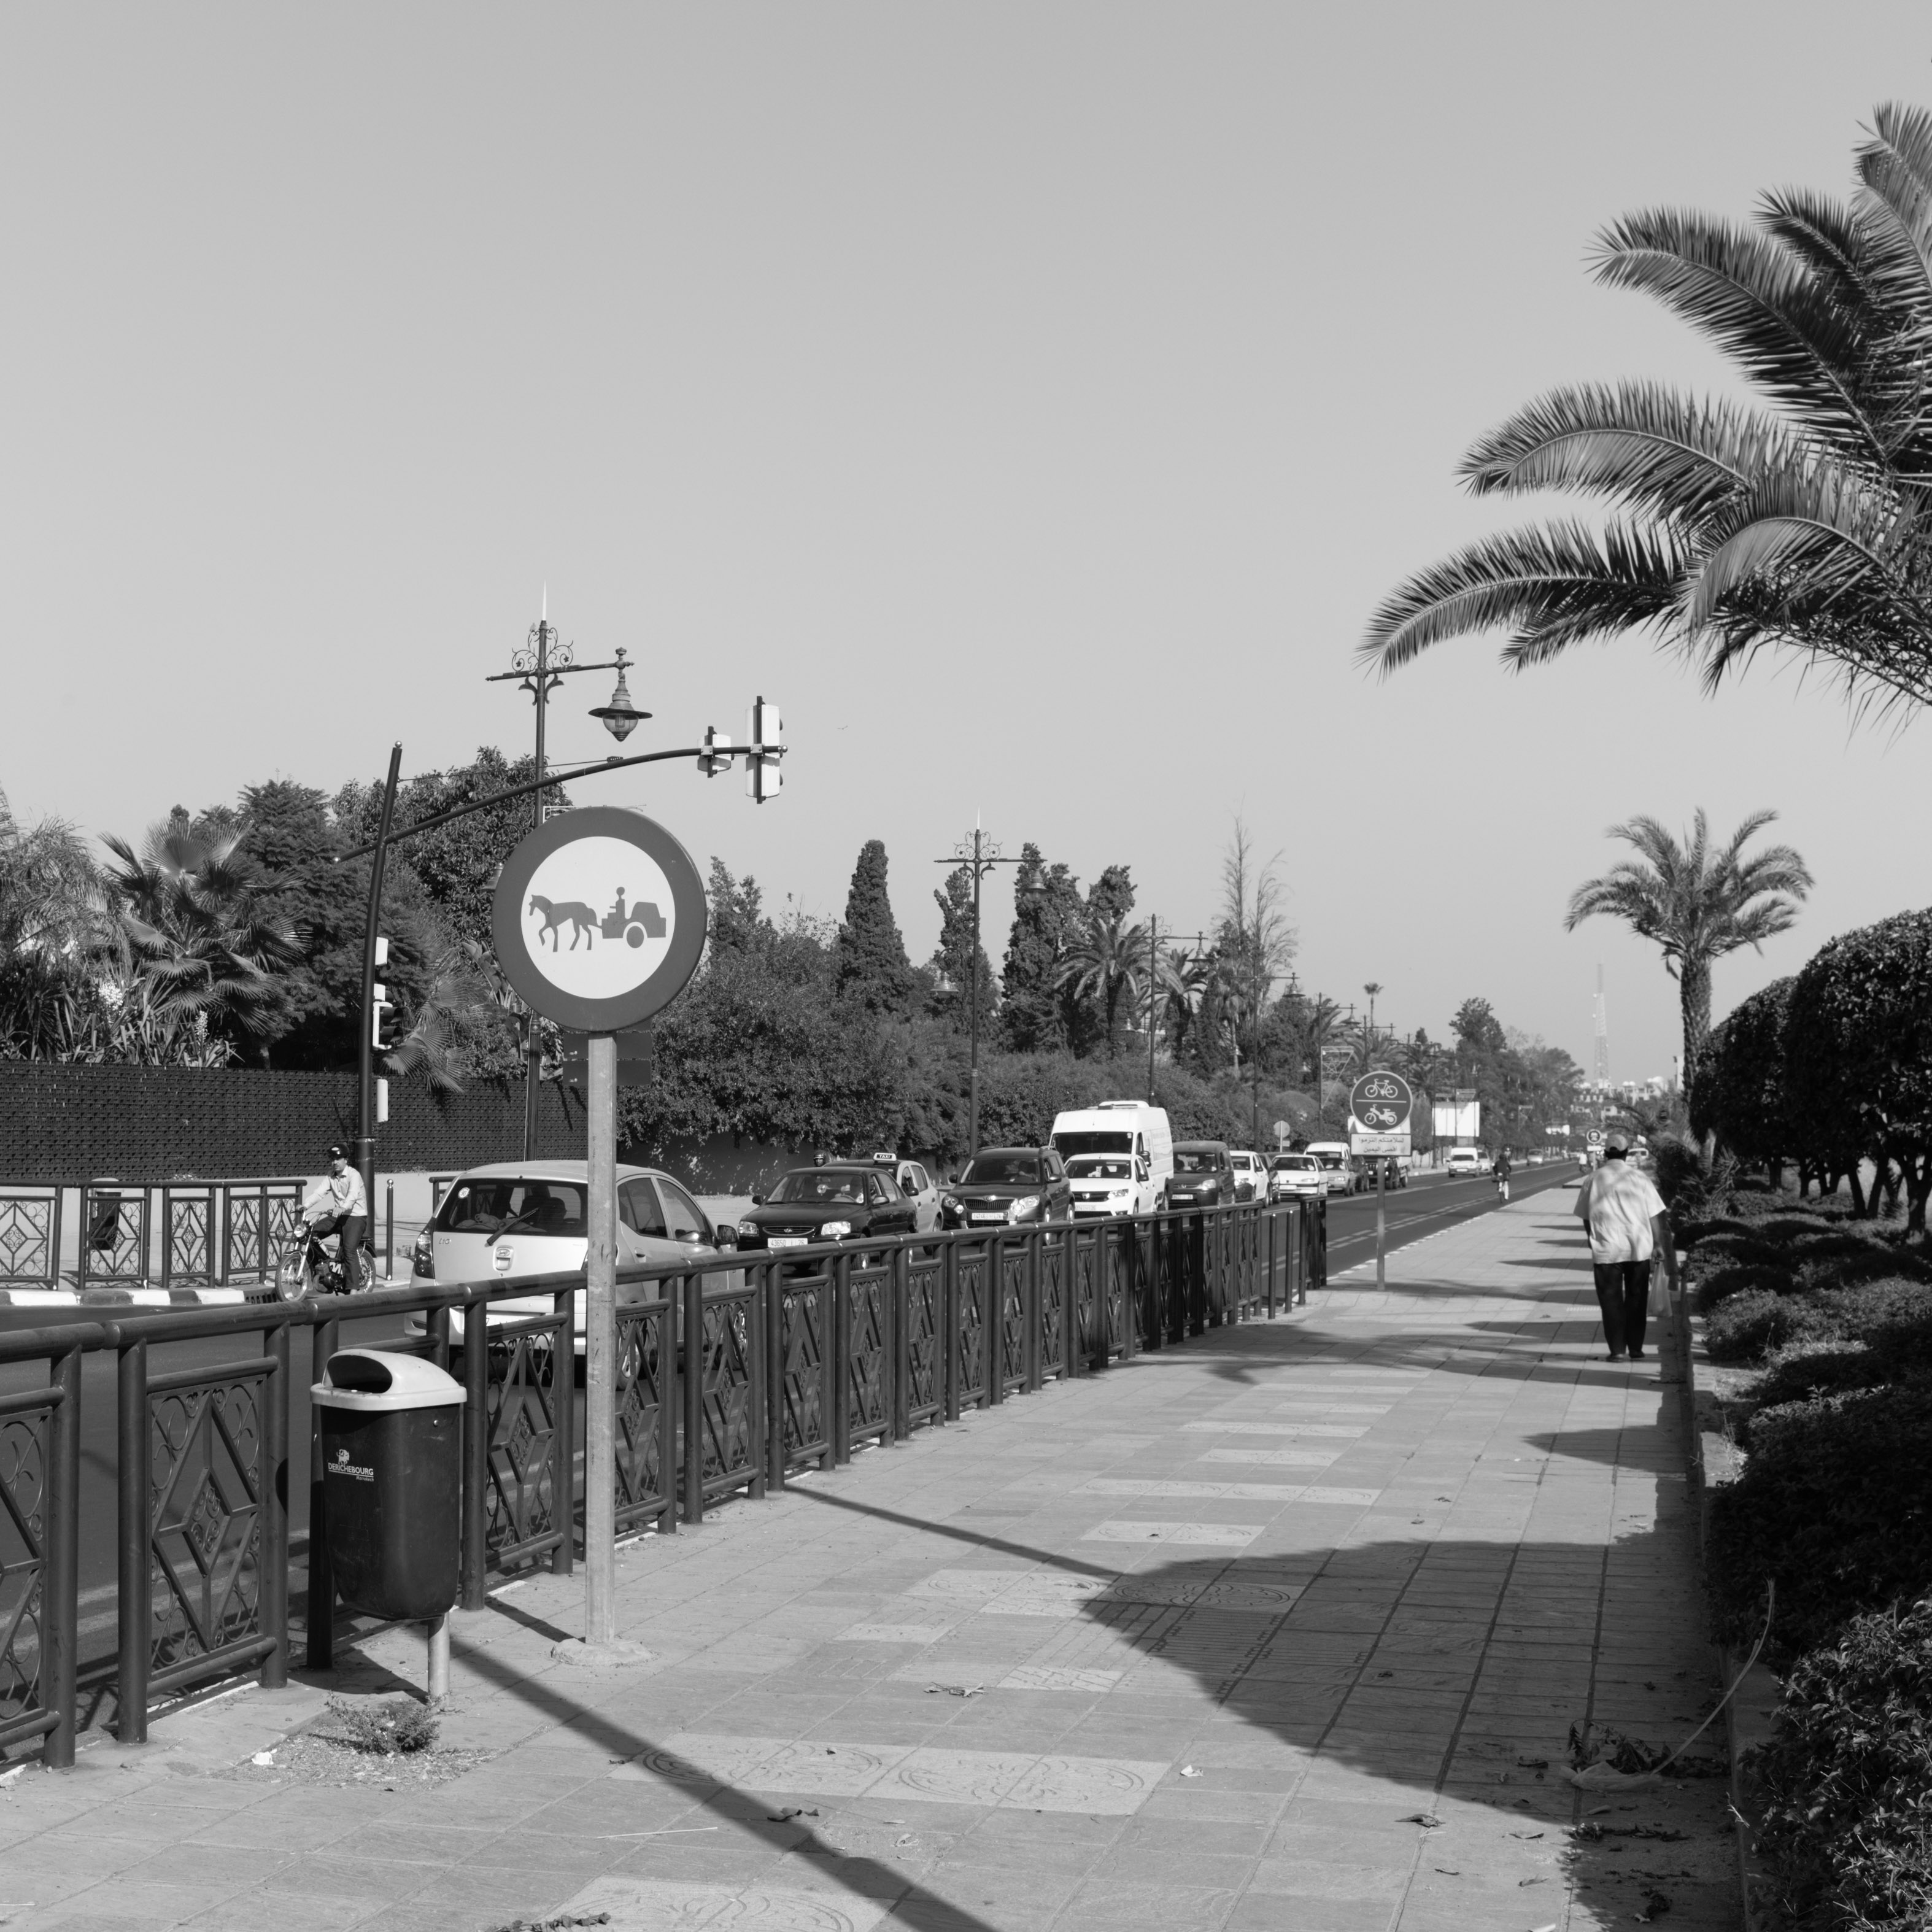 Traffic evolution at Marrakech-Medina (Marrakesh, Morocco) with Leica M Monochrom (Leica Summilux-M 35mm f/1.4 ASPH.) by Magnus L Andersson (photography.anderssoneklund.se) at 2017-09-30 10:11:04